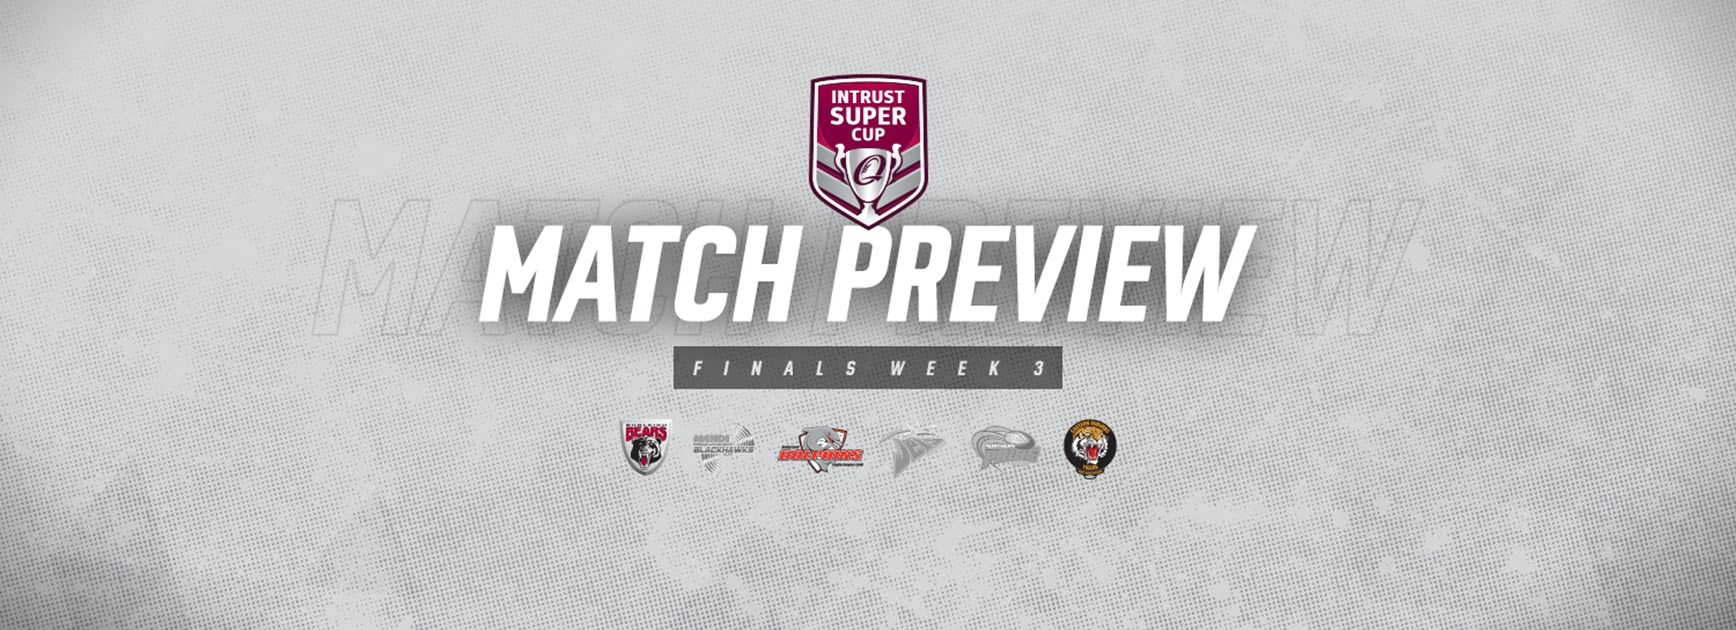 Intrust Super Cup Finals Week 3 Preview